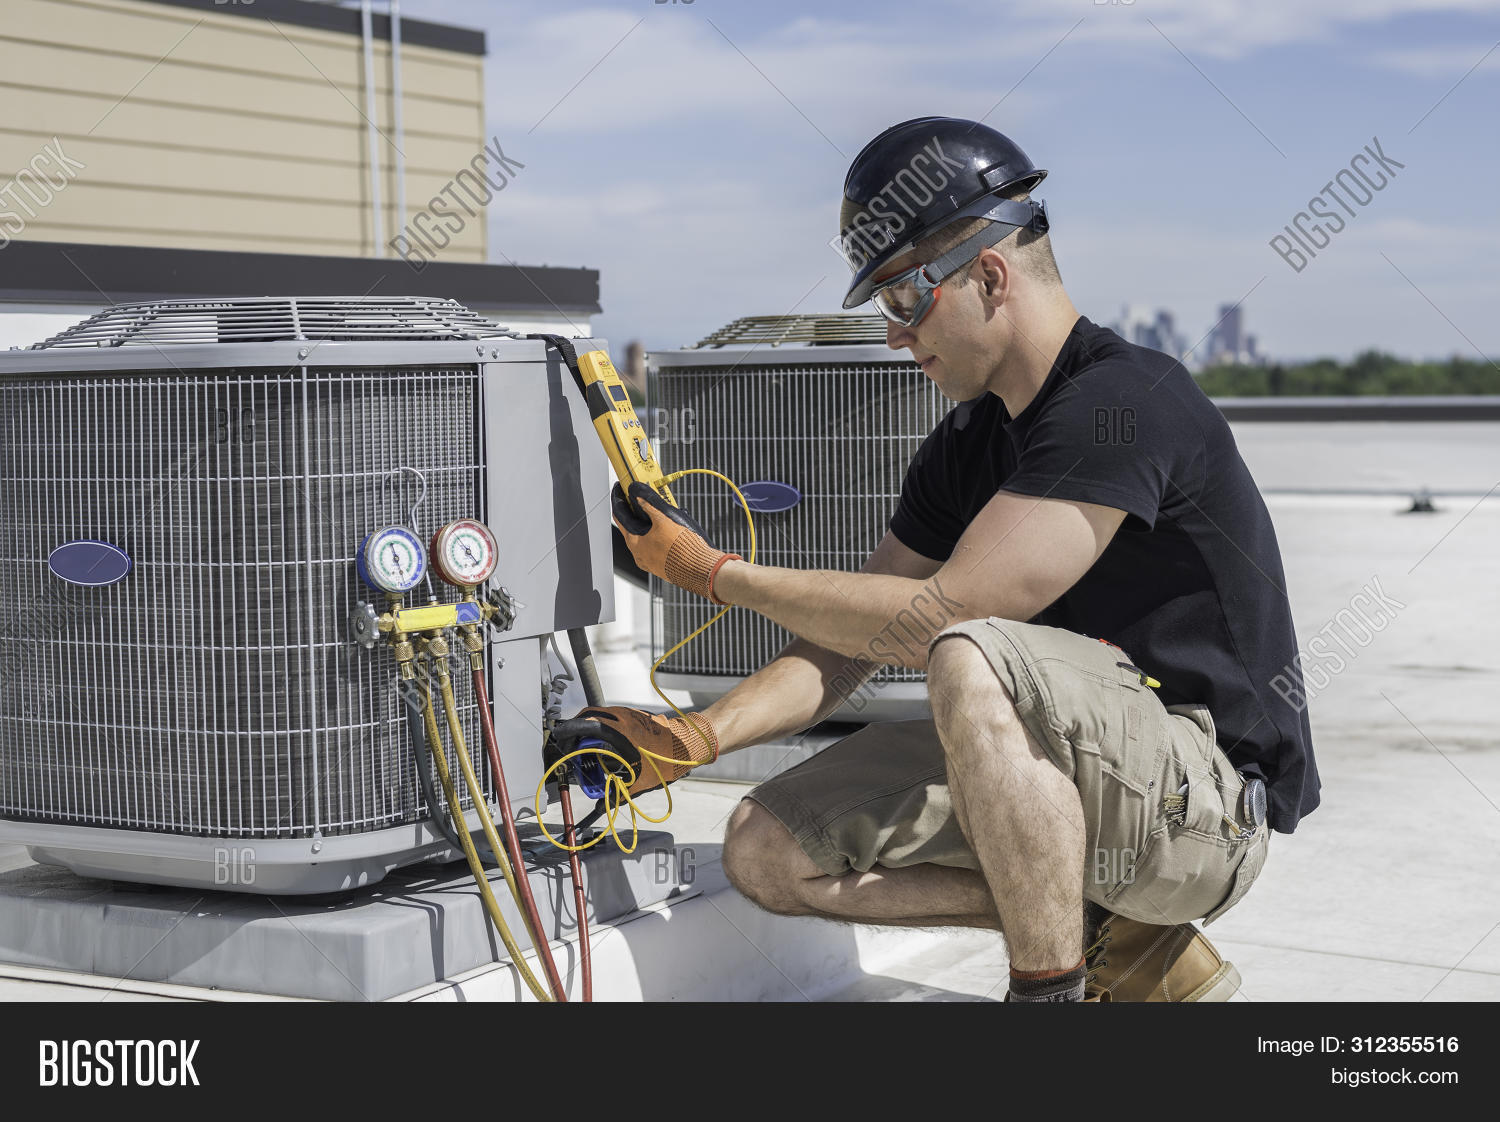 Equipment,Frozen,Ice,Industry,ac,air,coils,conditioner,cooling,electric,energy,fan,fix,gauges,gear,gloves,guy,heating,helmet,hot,hvac,job,laborer,maintenance,man,mechanical,meter,outdoors,person,repairman,safety,technician,tools,trade,ventilation,voltage,work,worker